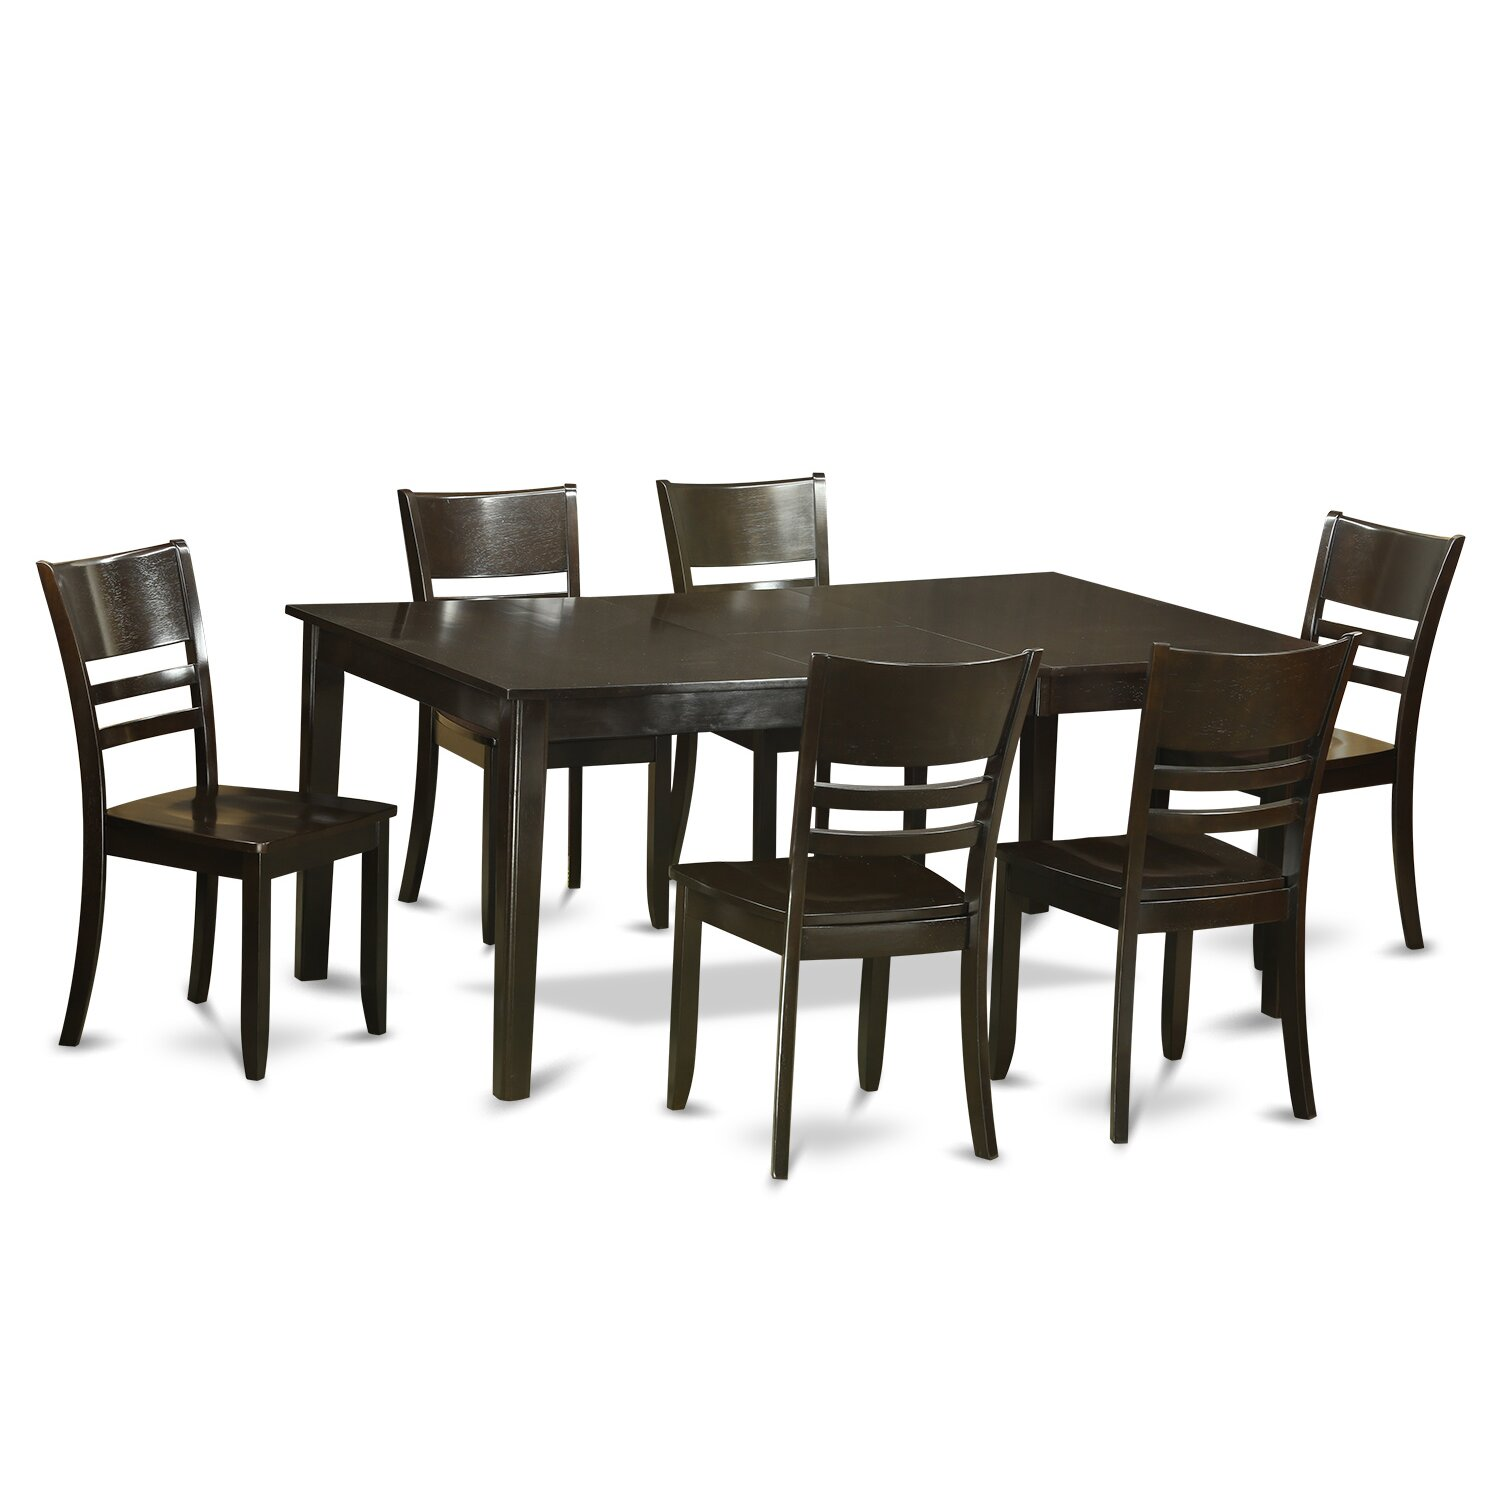 28 Wayfair Dining Room Chairs Jofran Dining Chairs  : 7 Piece Dining Set dining Room Set Table and 6 Dinette Chairs HELY7 CAP W from jobberguy.com size 1500 x 1500 jpeg 172kB